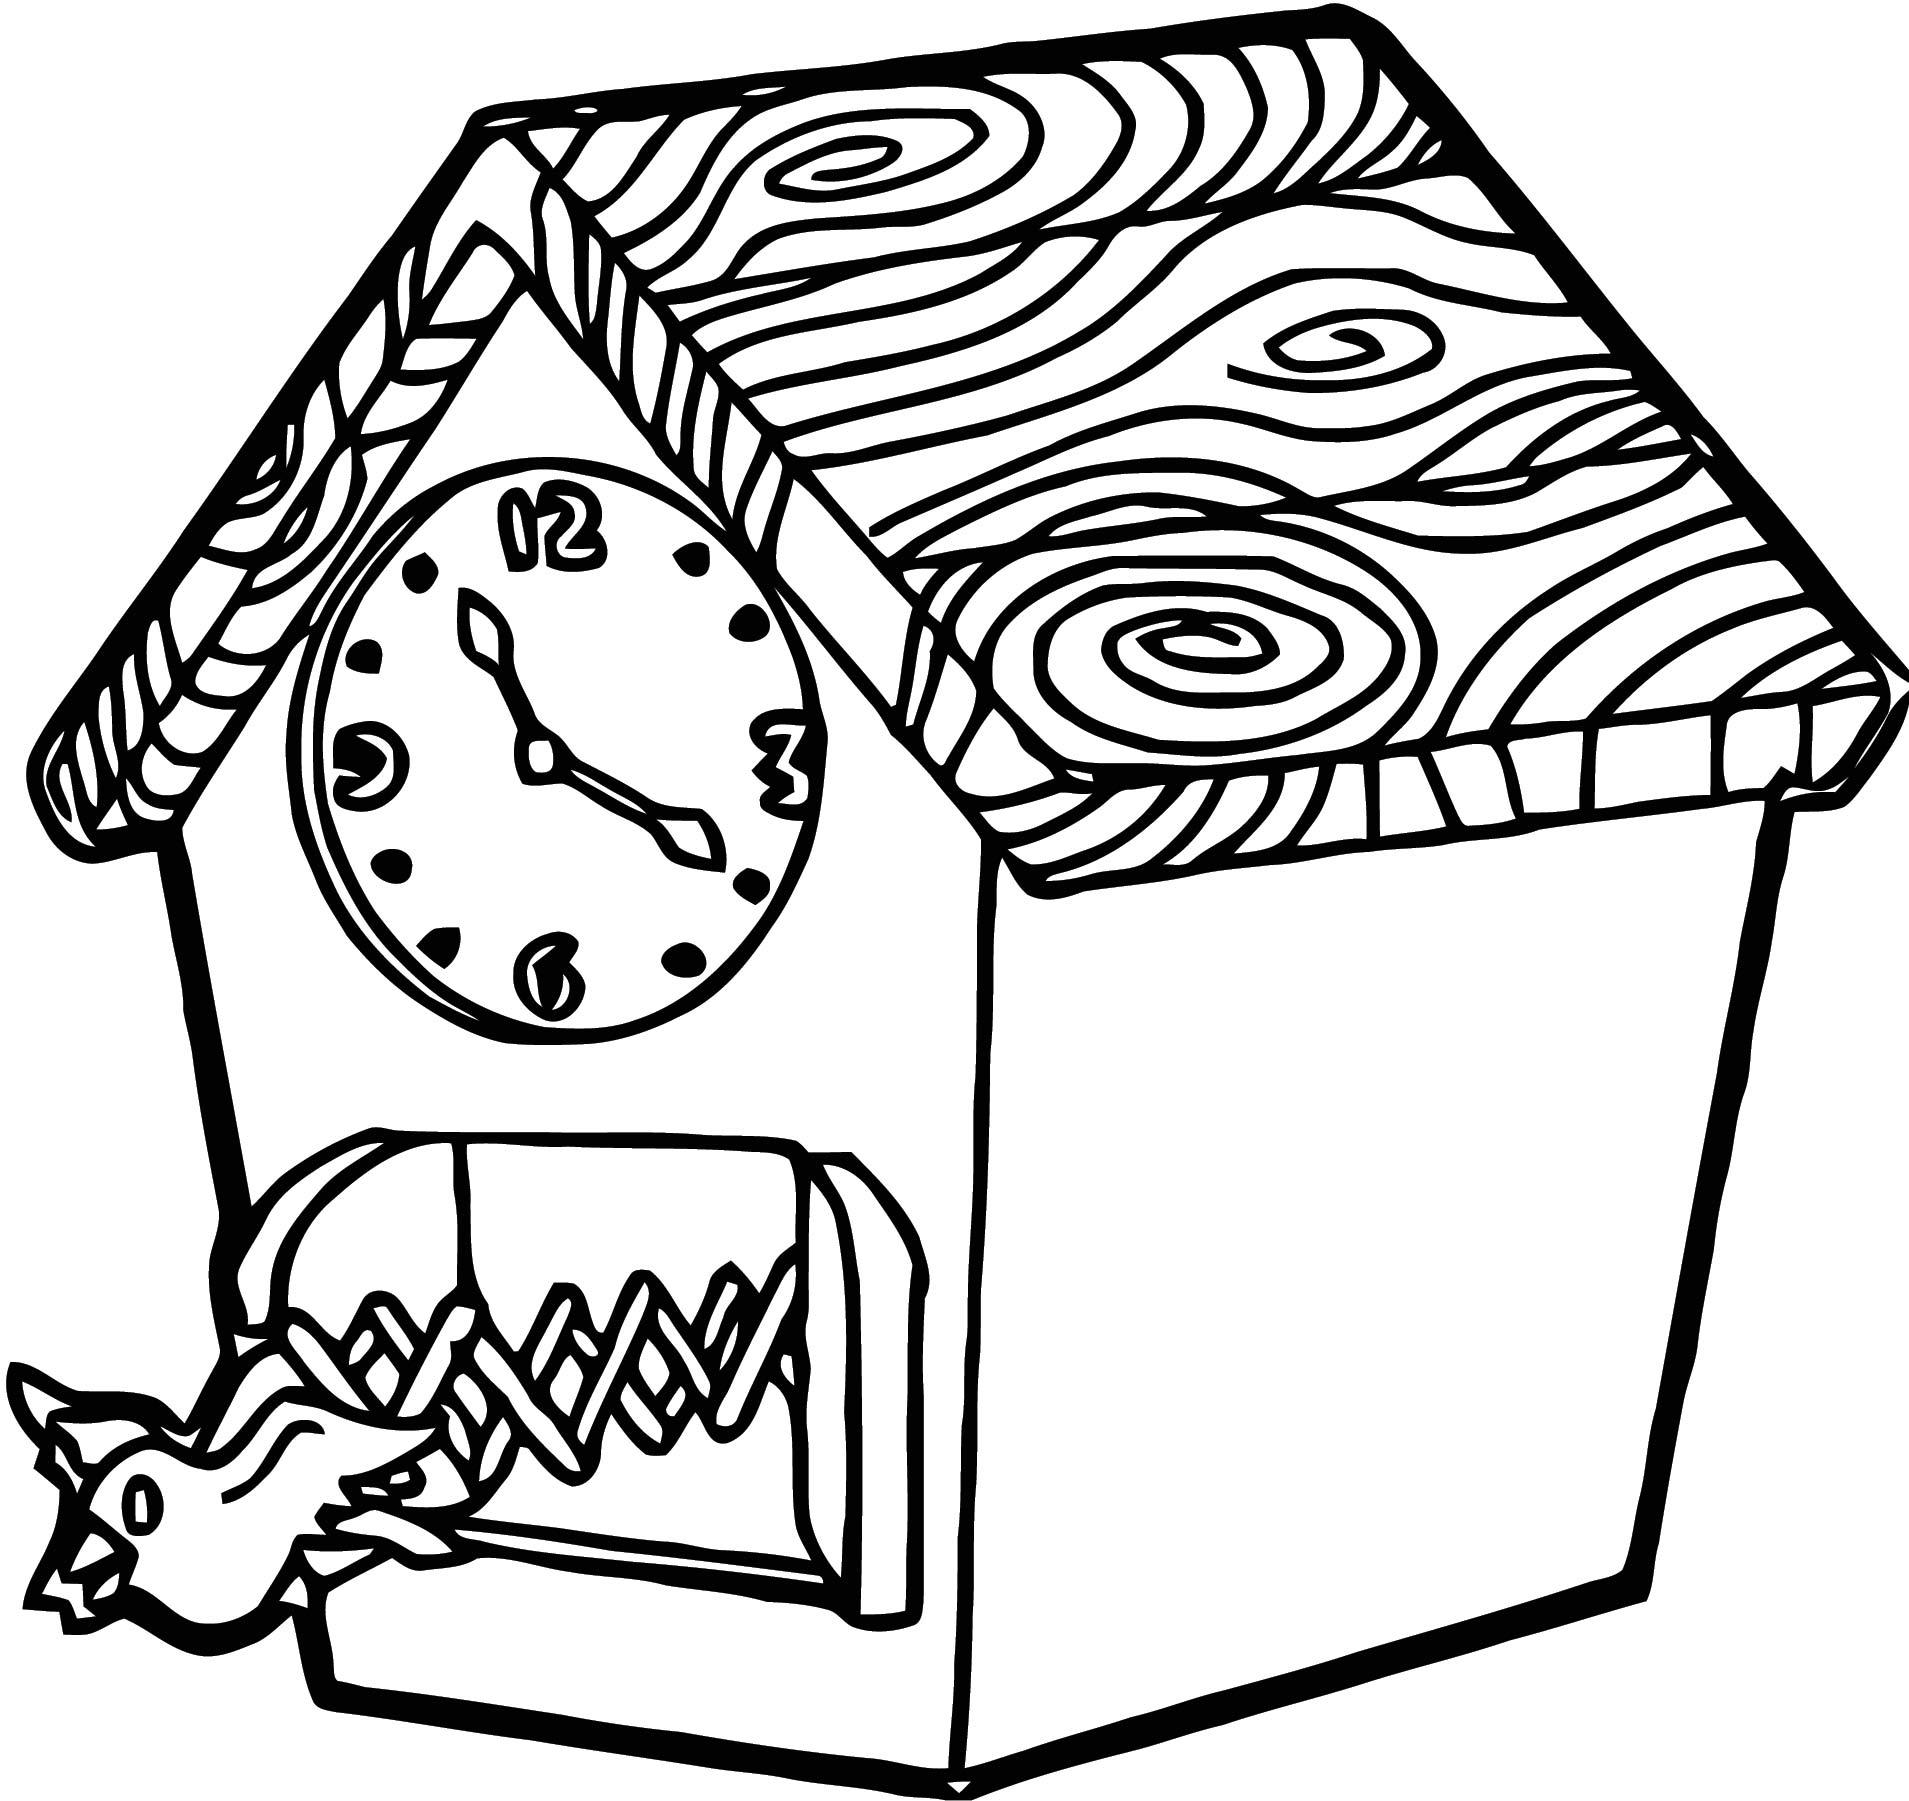 Clock Cuckoo Free Printable 2 Cartoonized Free Printable Coloring Page